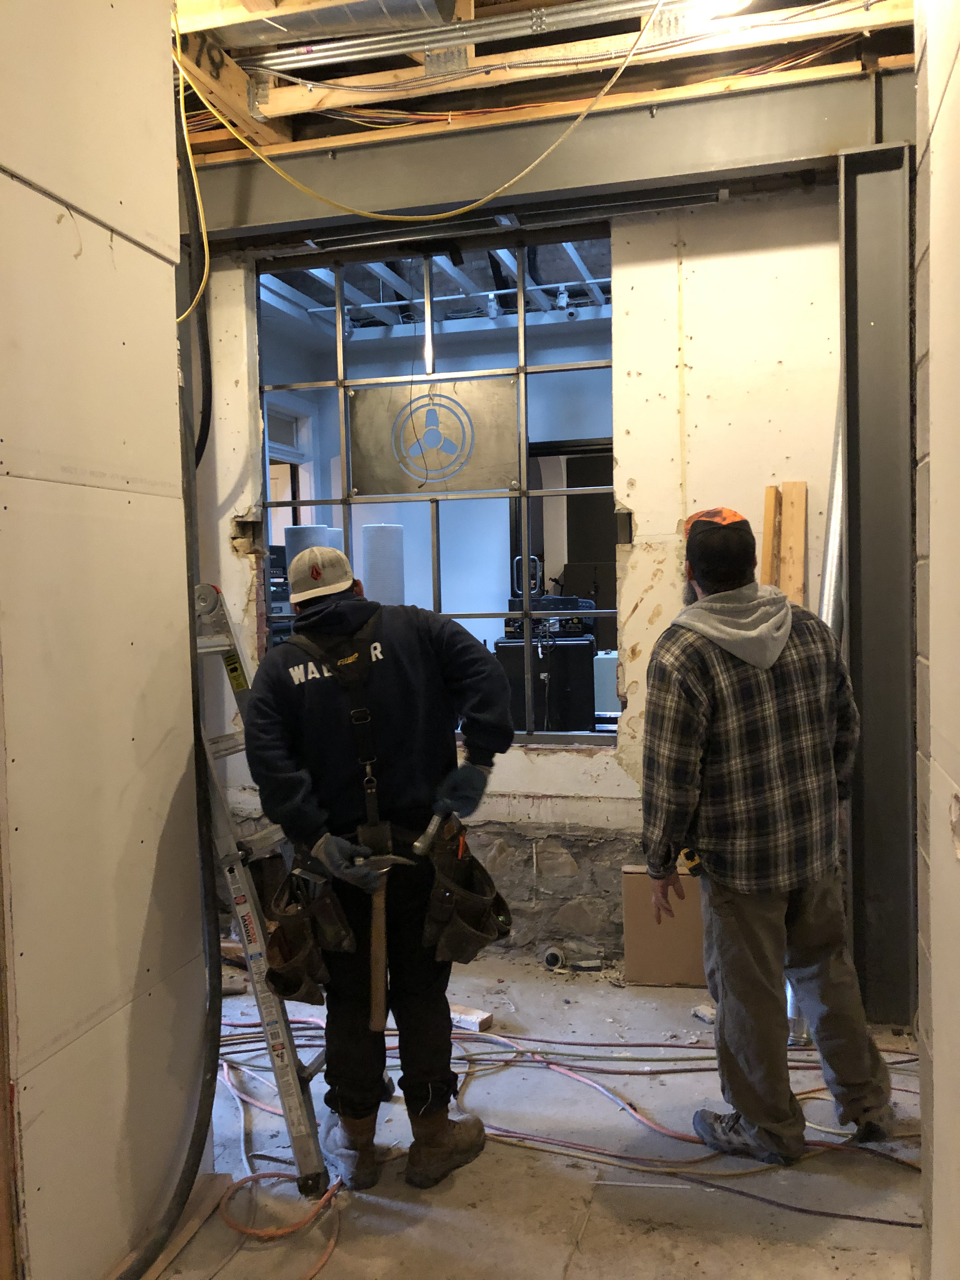 We removed the temporary wall that separated the future lounge / kitchen which is in the rear of the house from the hallway of the new space. It was exciting to get a sense for how these two spaces will work together.